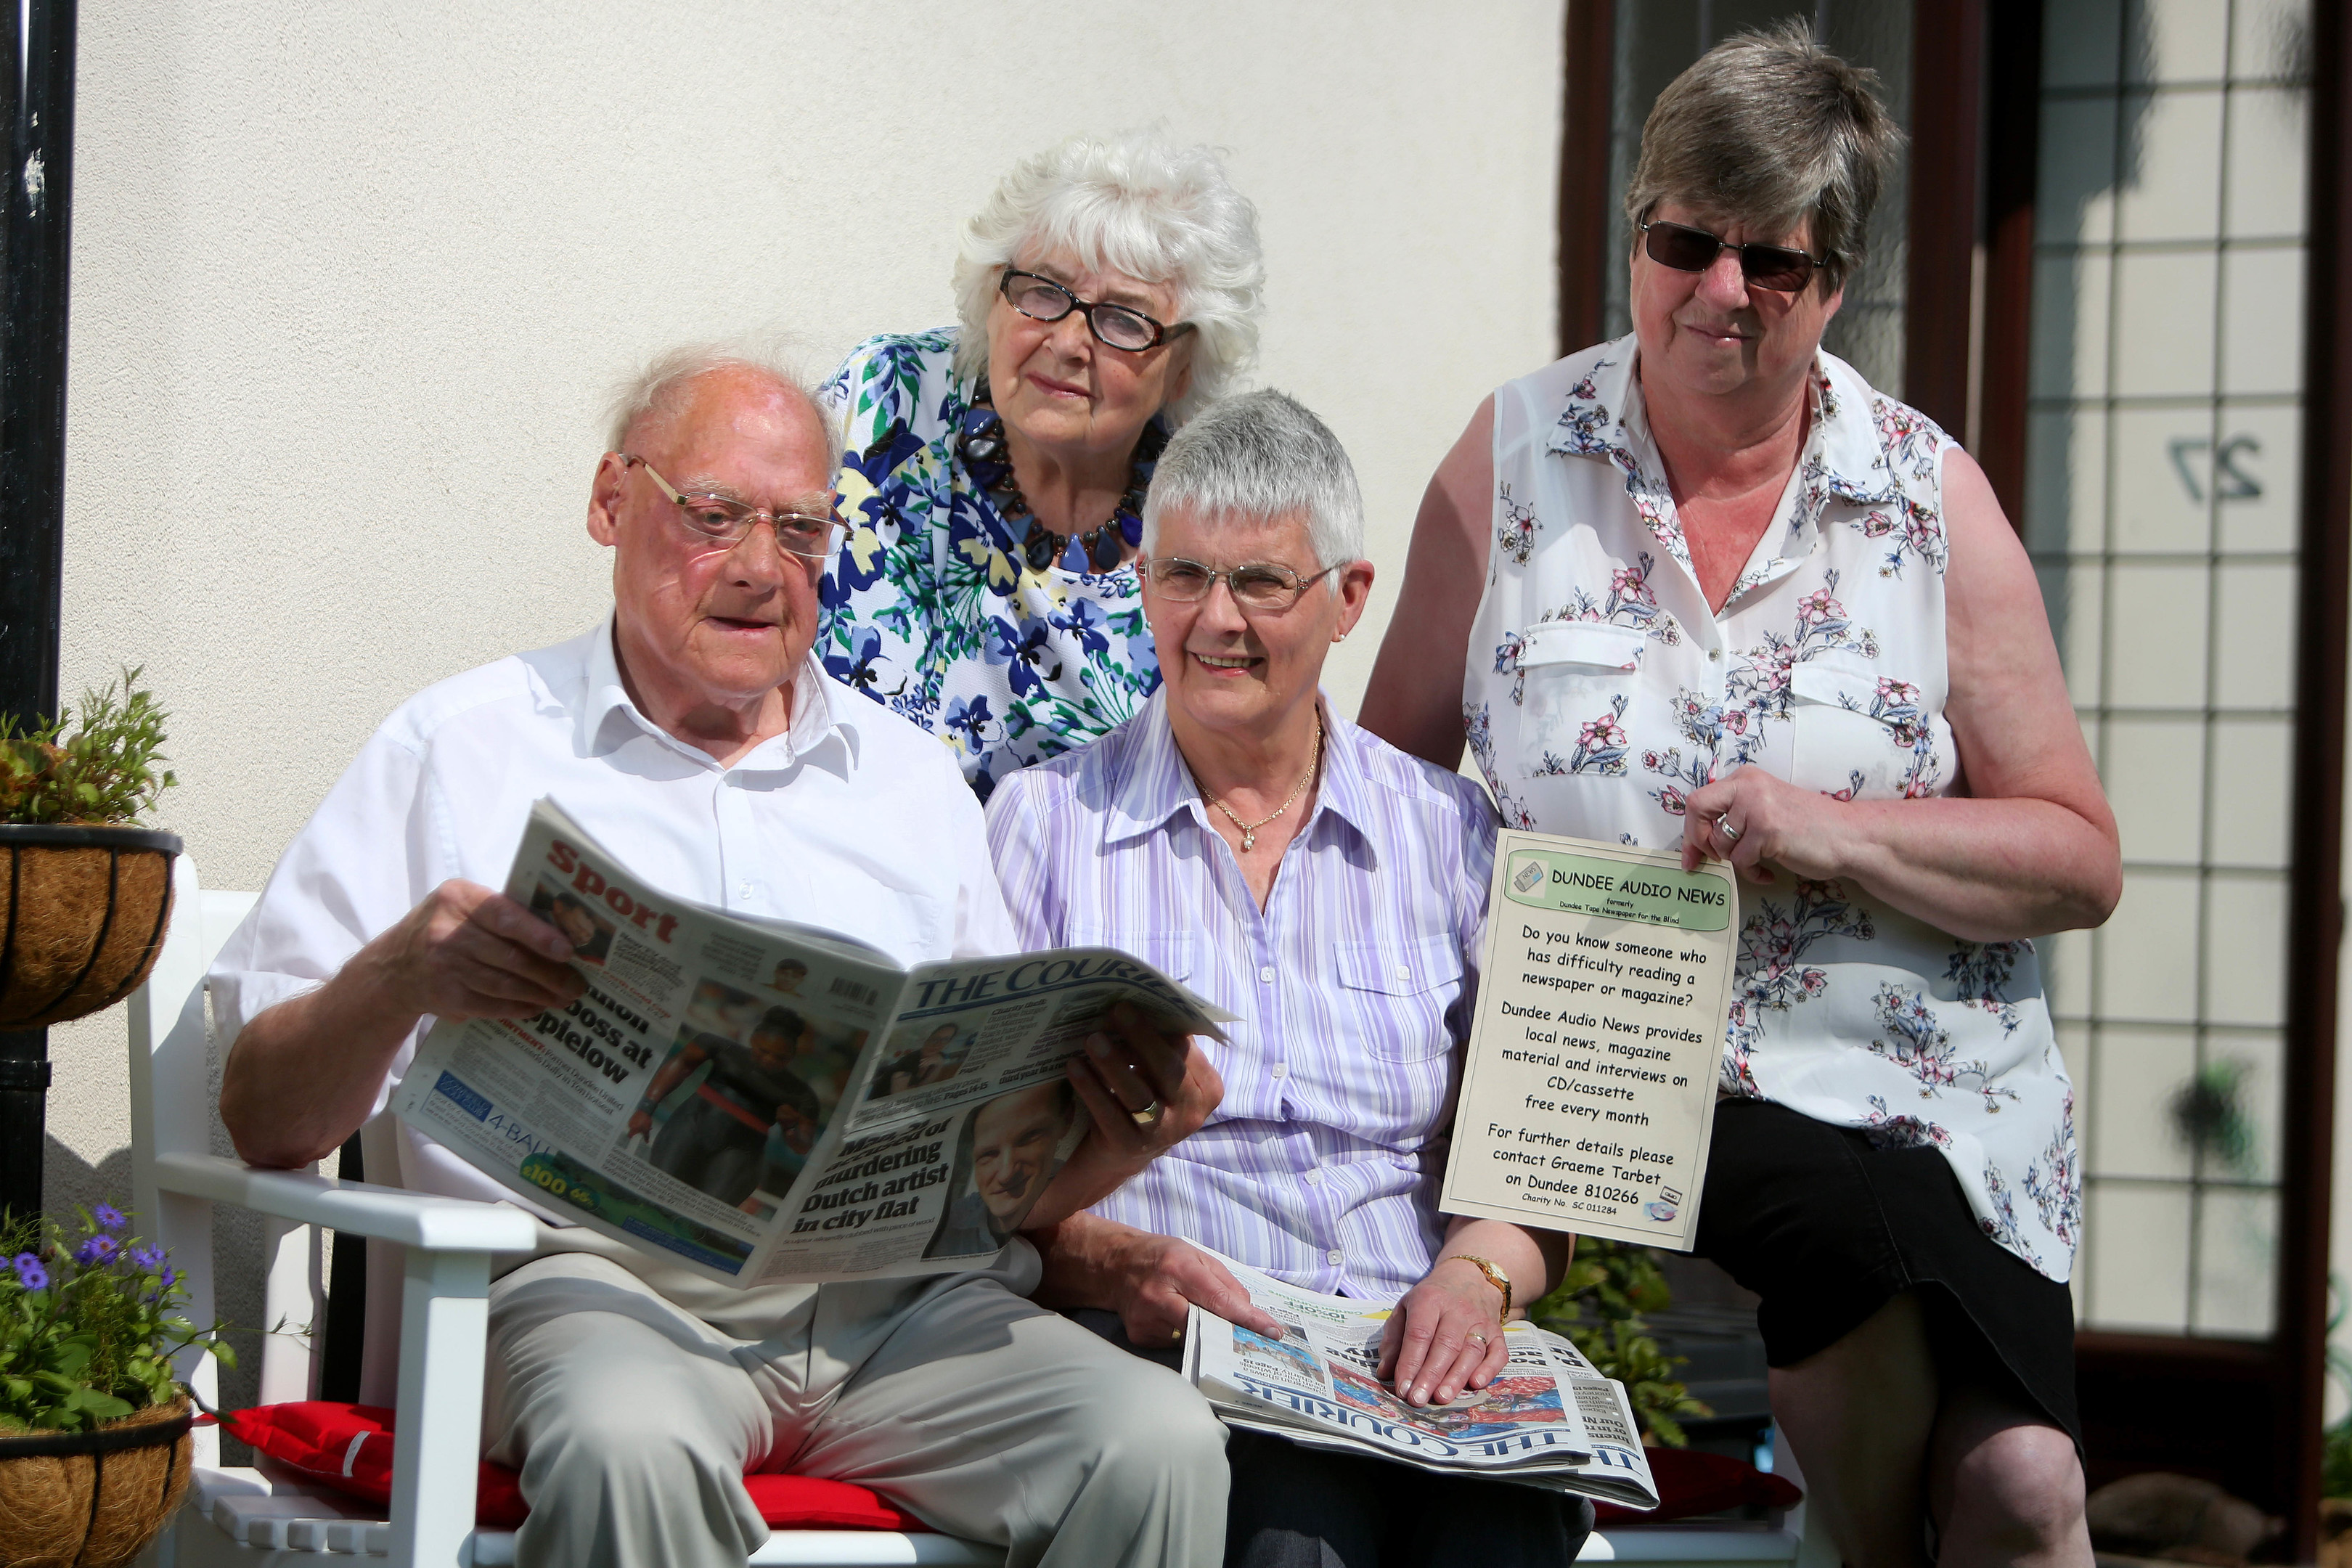 Graeme Tarbet who has been running Dundee's talking newspaper service, which is marking its 40th anniversary. Pic shows; Graeme Tarbert, Pauline Meldrum, Jessie Tarbert and Irene Stephen, volunteers with the service.